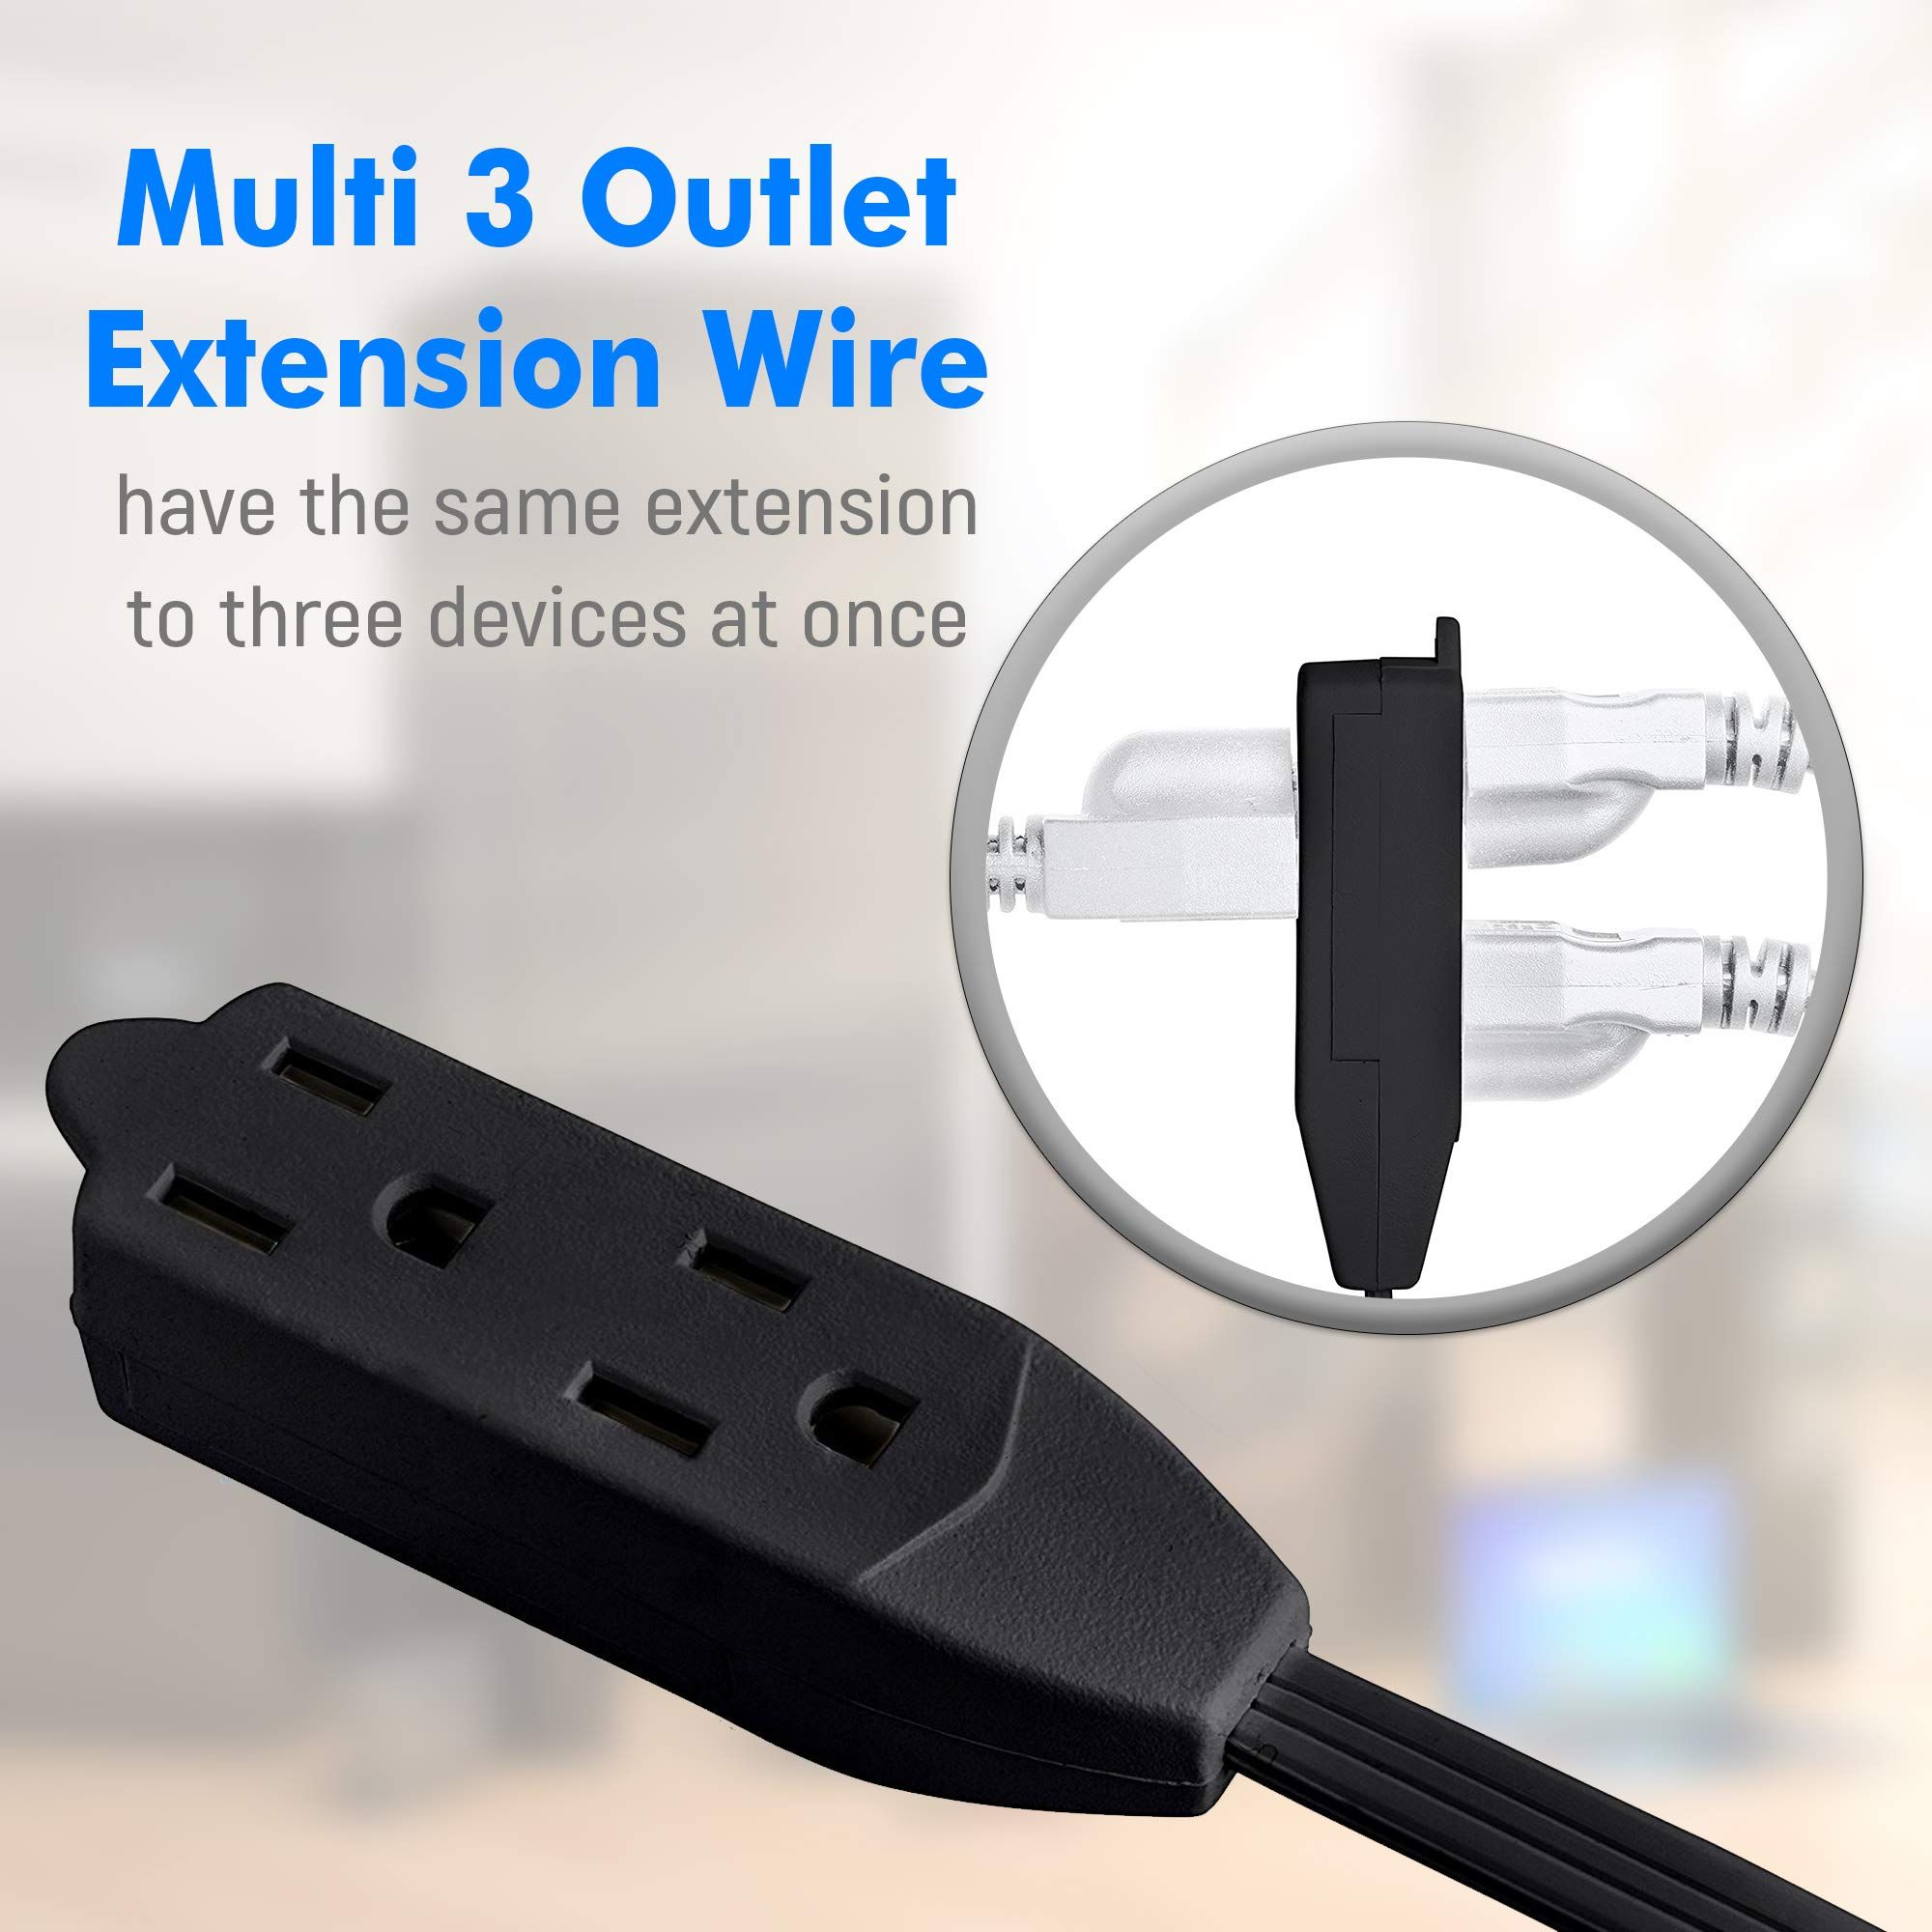 maximm cable 2 ft 360 rotating flat plug extension cord wire 16 awg 24 inch multi 3 outlet extension wire 3 prong grounded wire black ul listed  [ 2000 x 2000 Pixel ]